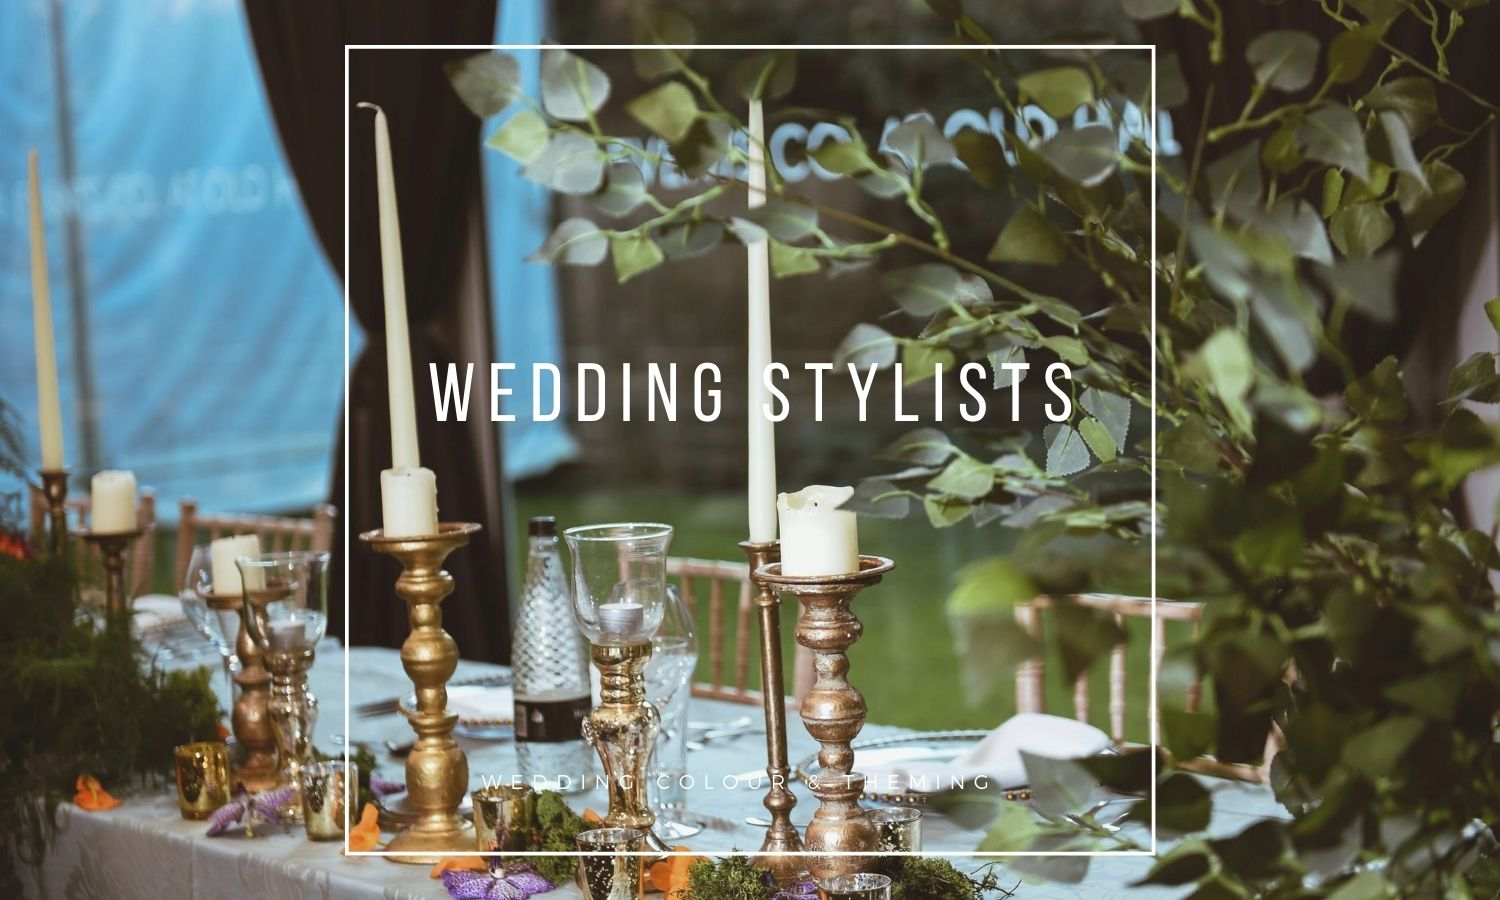 wedding-stylist-planners